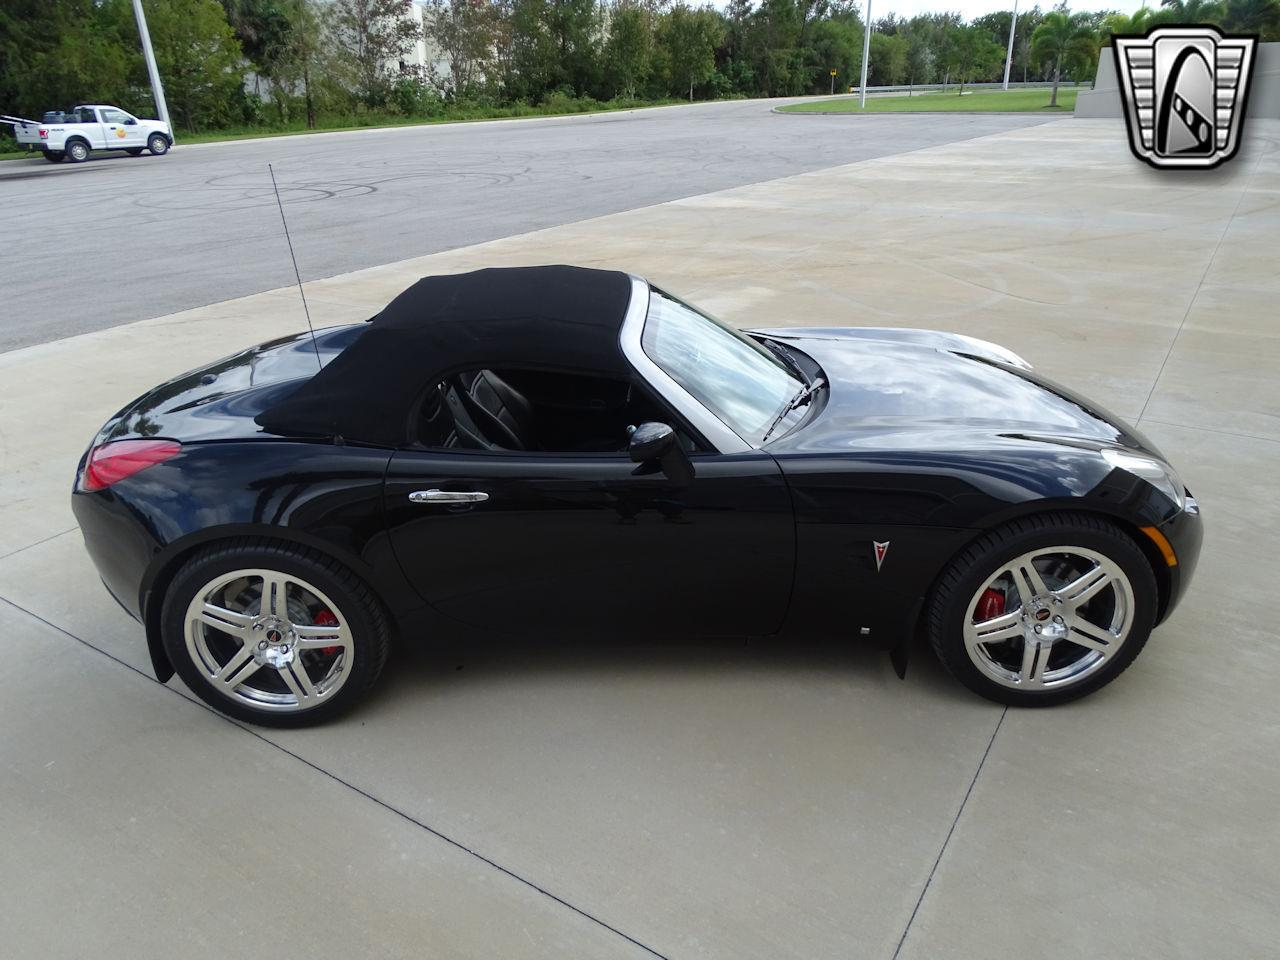 2006 Pontiac Solstice (CC-1420816) for sale in O'Fallon, Illinois